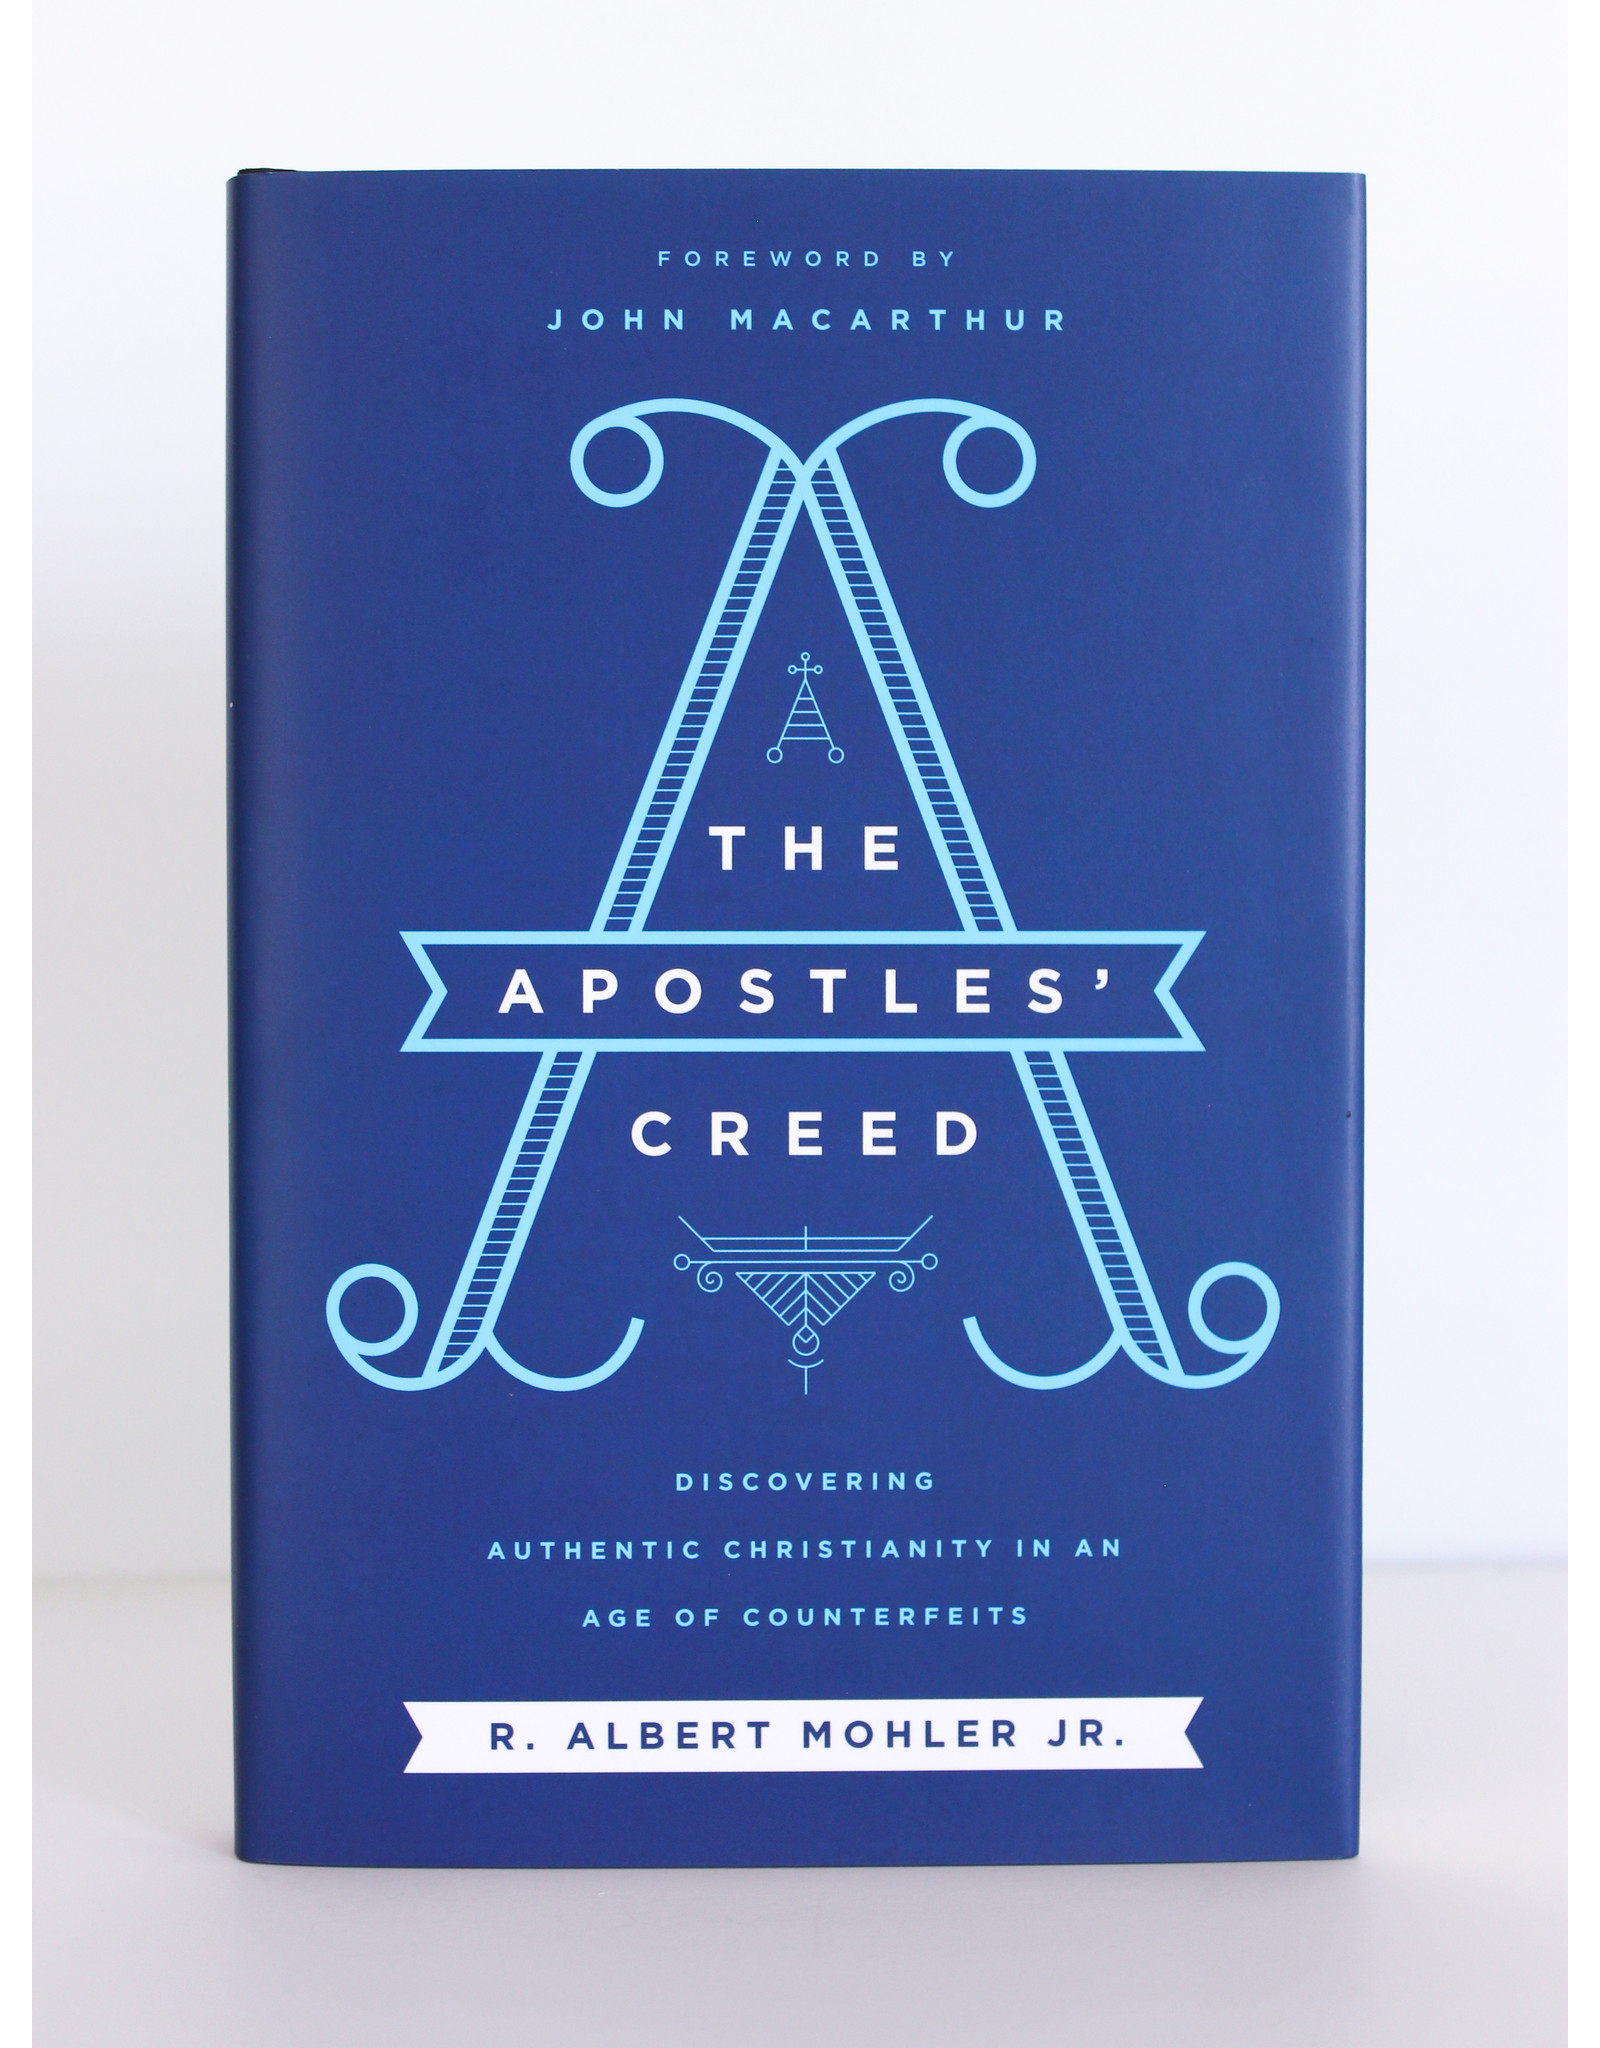 Harper Collins / Thomas Nelson / Zondervan The Apostles' Creed: Discovering Authentic Christianity in an Age of Counterfeits